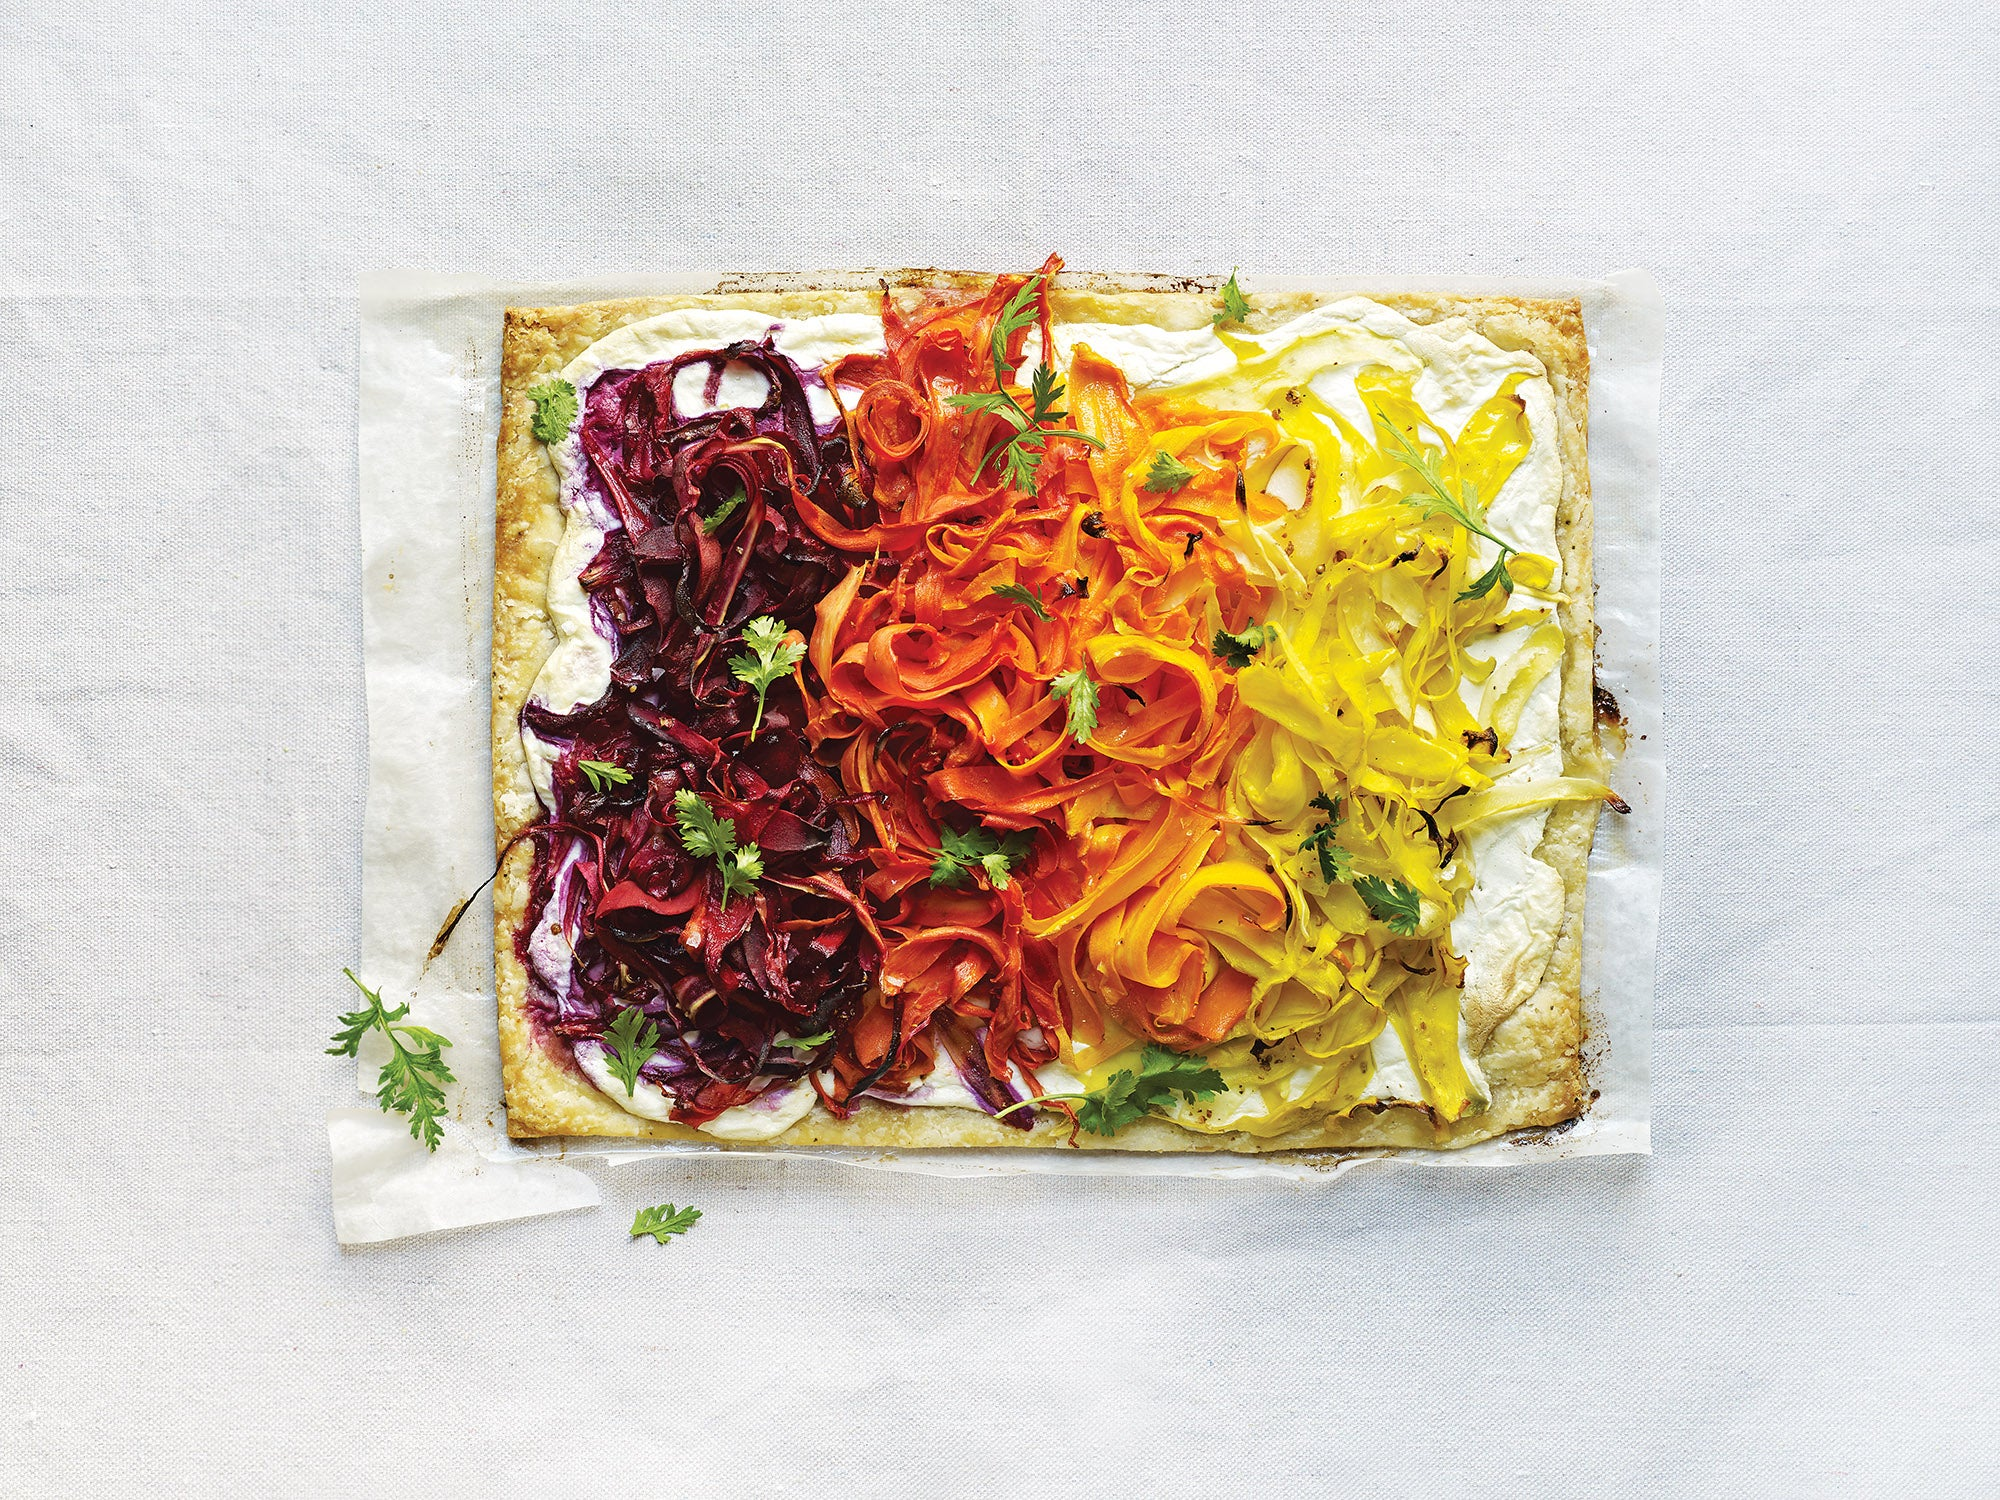 20 Vegetables To Cook This Spring